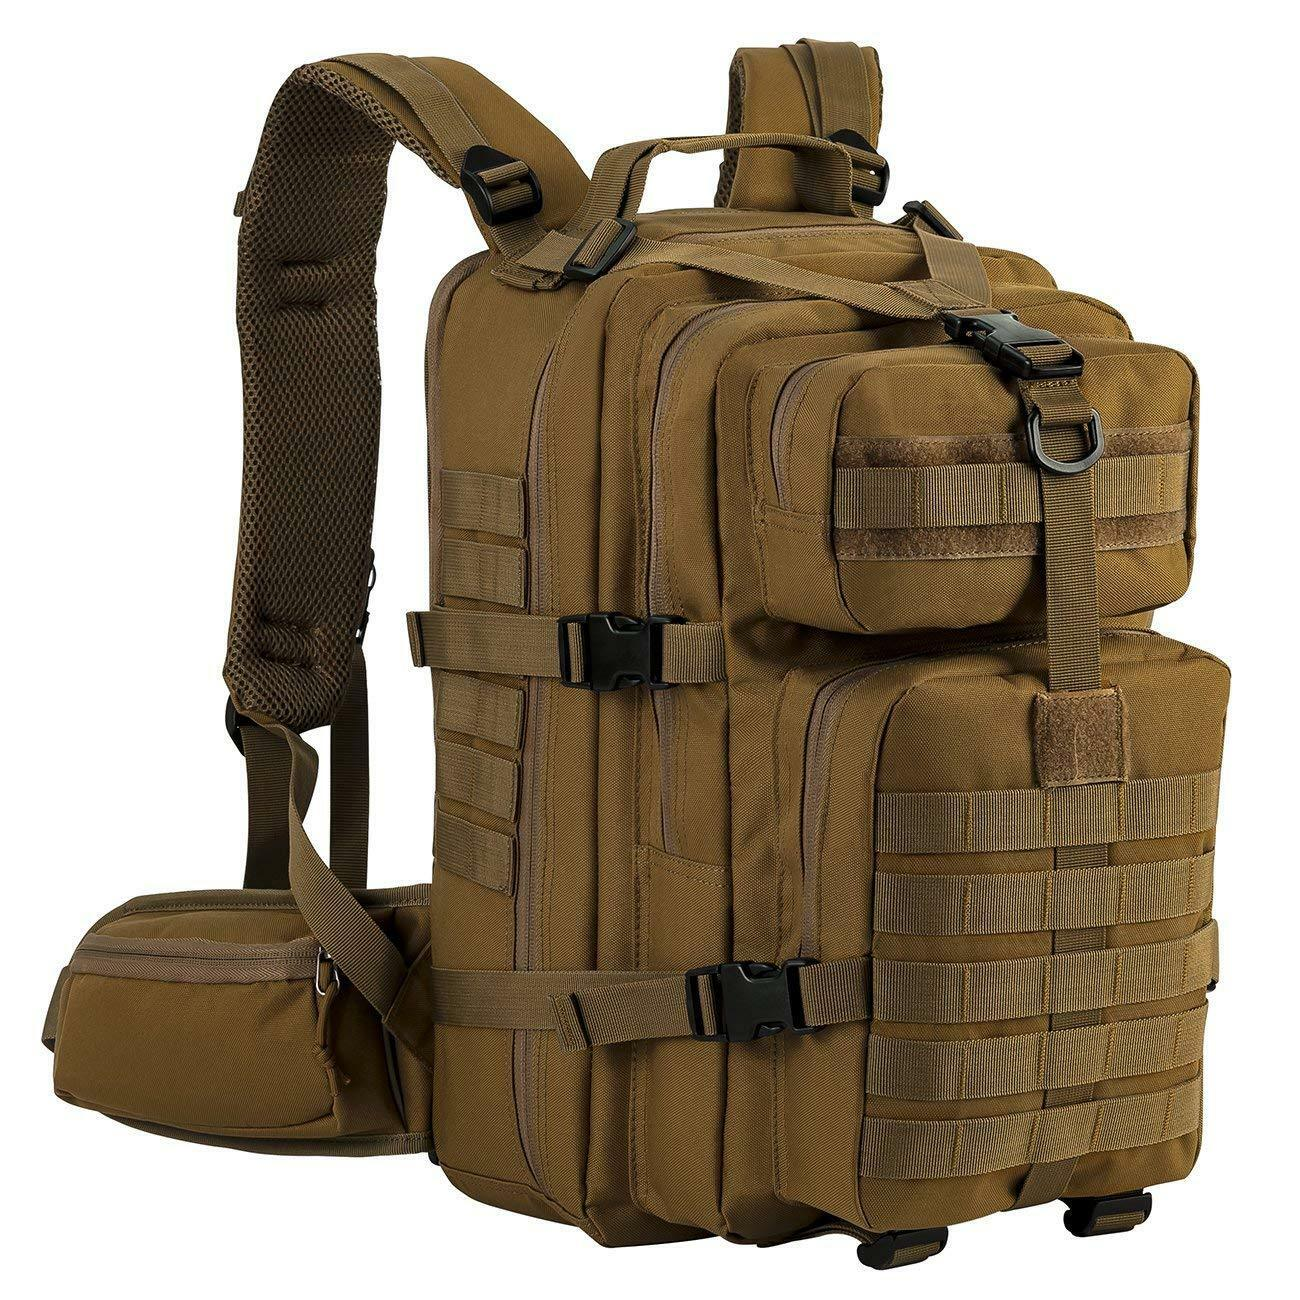 Bug Out Bag Military Tactical Backpack 3 Day Small Assault Survive Pa... - s l1600